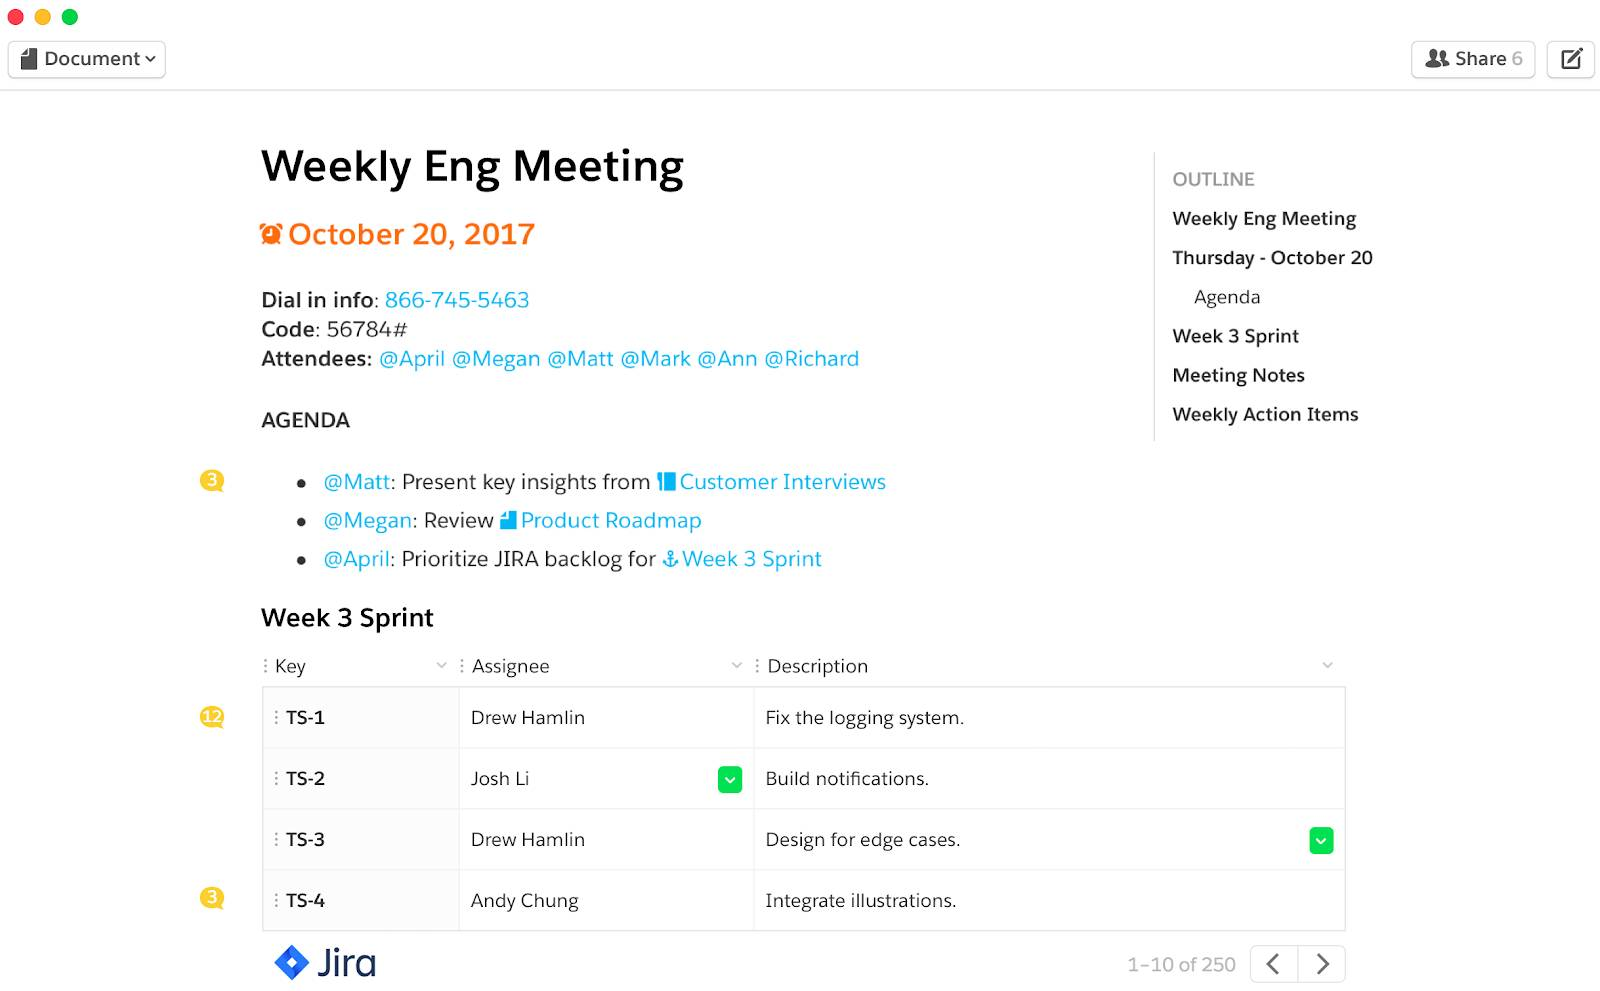 Picture shows Jira Live App allowing team's live Jira data to be added to Quip documents to view, update, and collaborate on development projects in real time